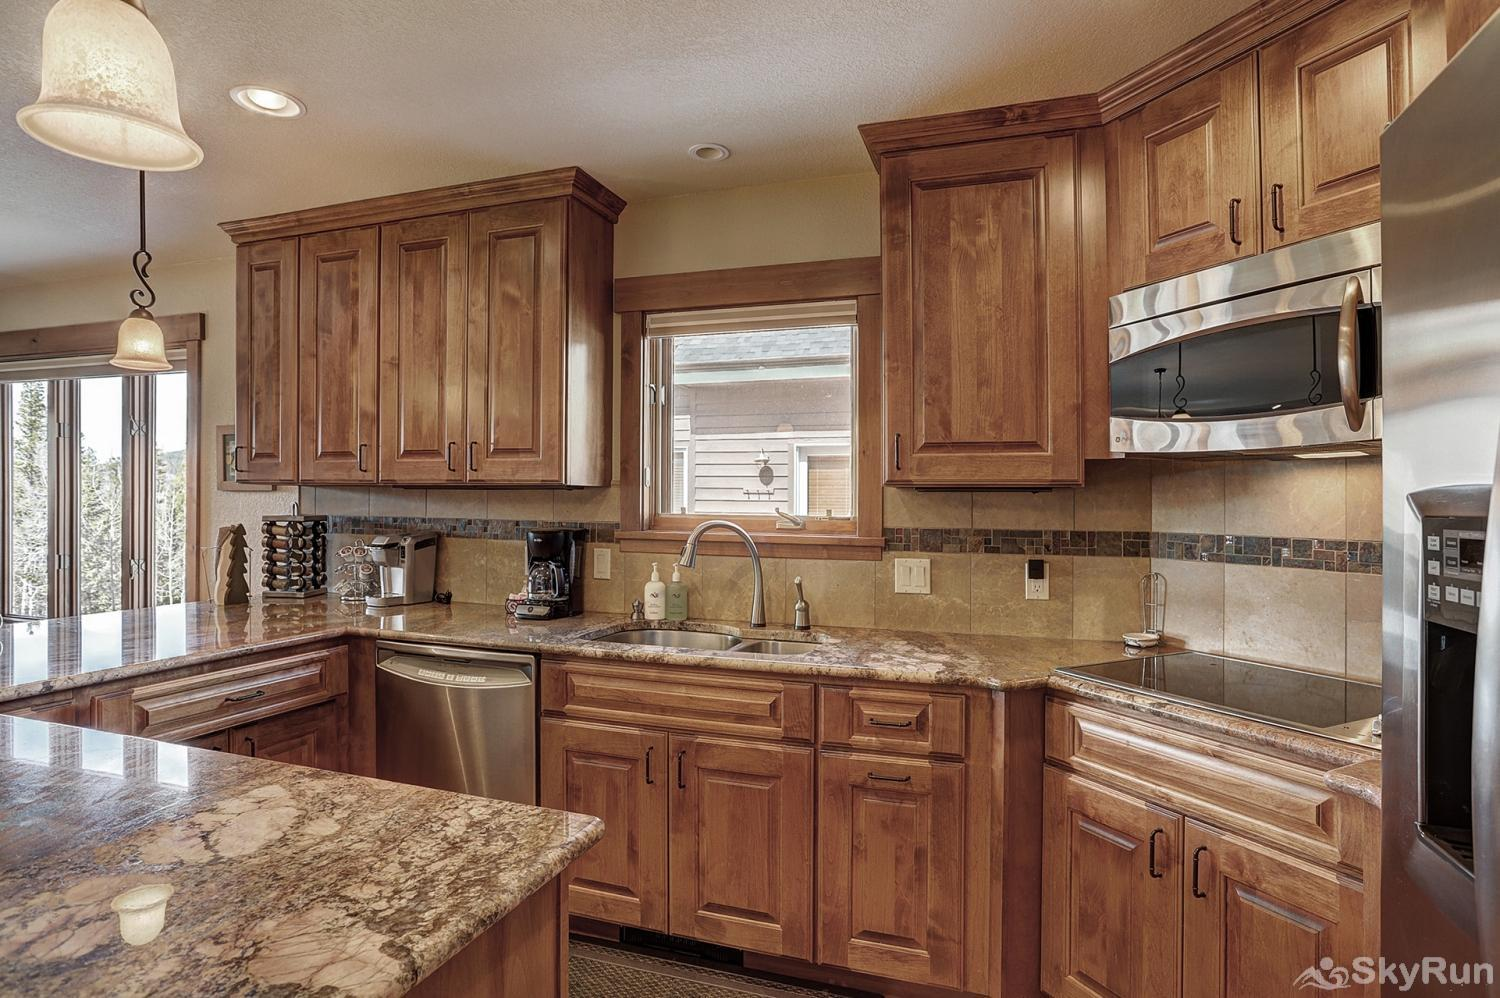 Happy Trails Fully equipped kitchen updated with stainless steel appliances